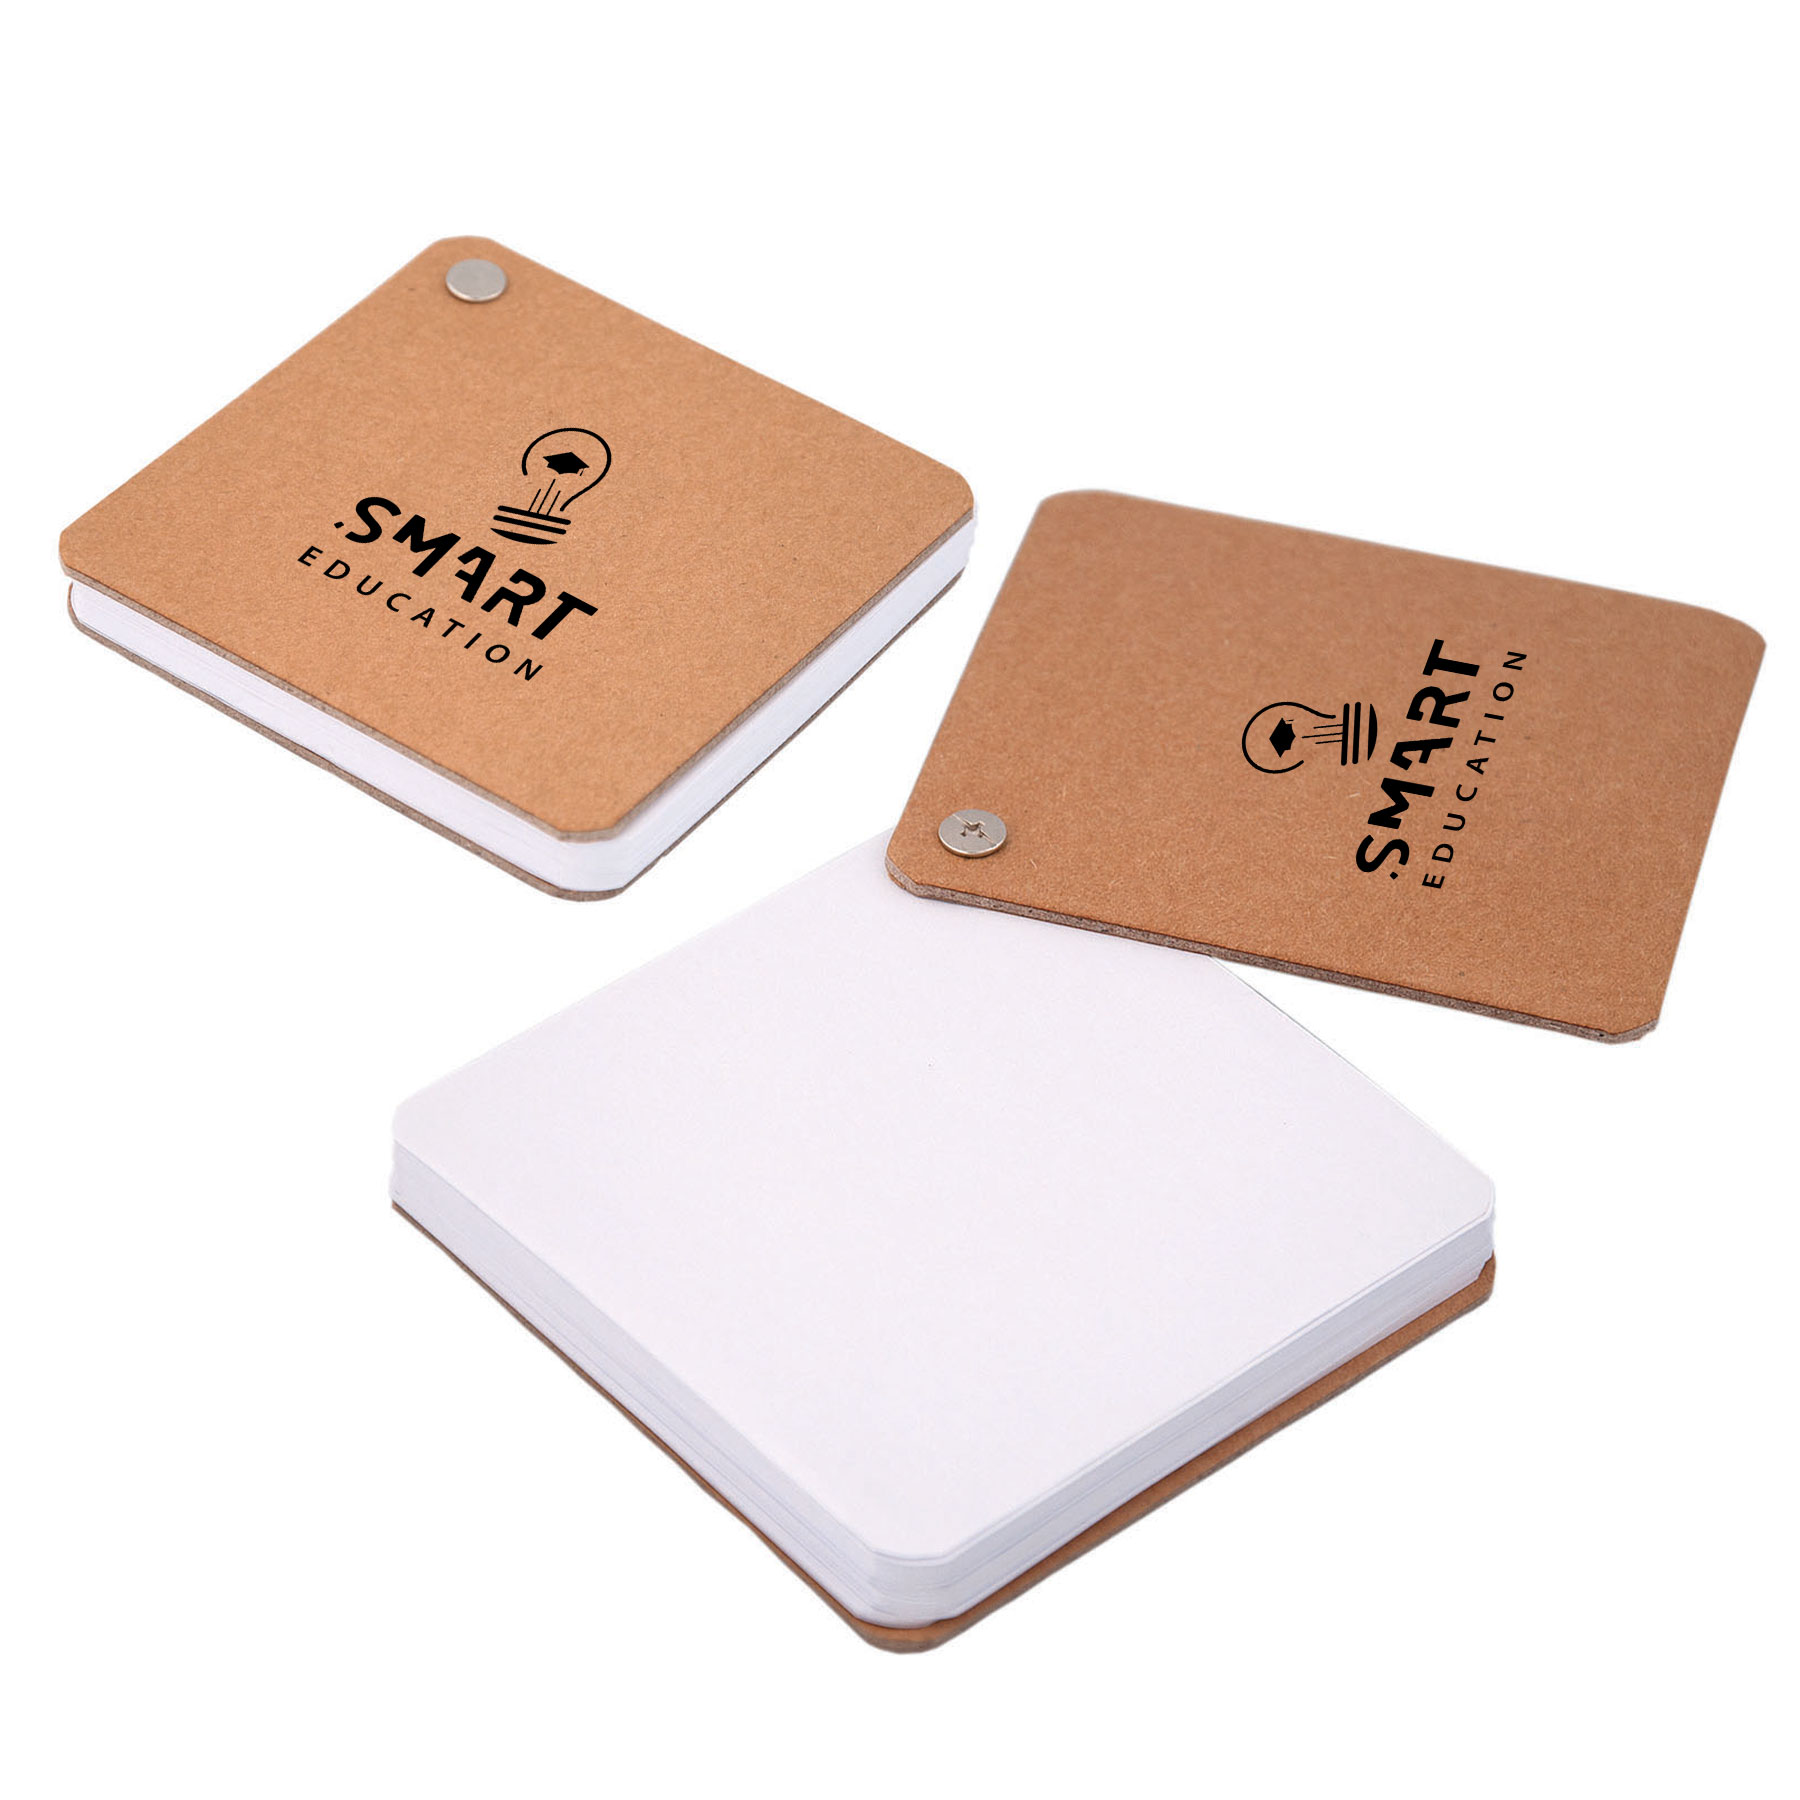 Recycled Cardboard Pivot Pad - White, CA8361, 1 Colour Imprint